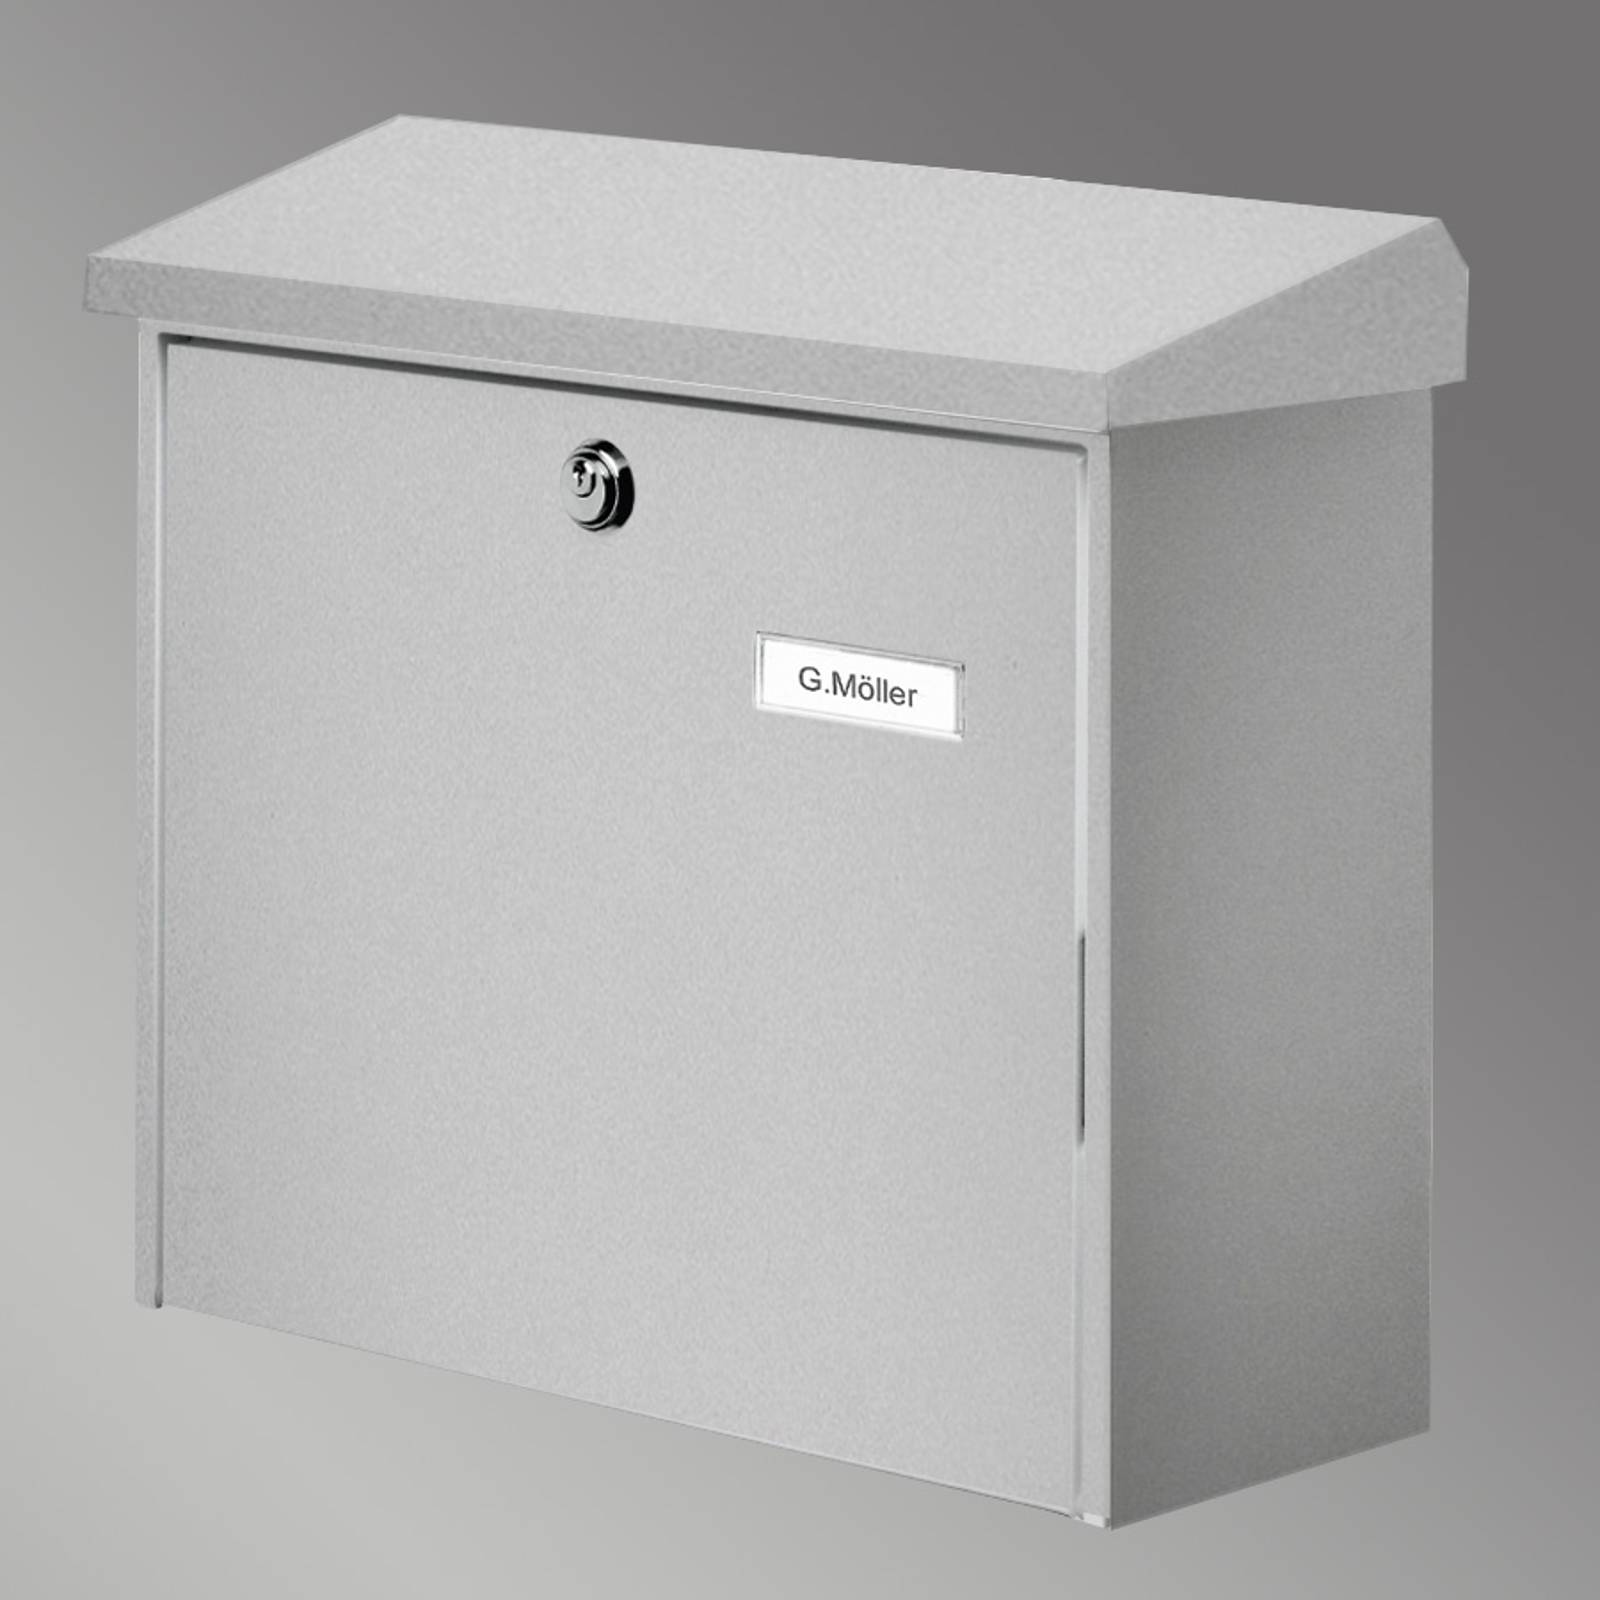 COMFORT letterbox, silver